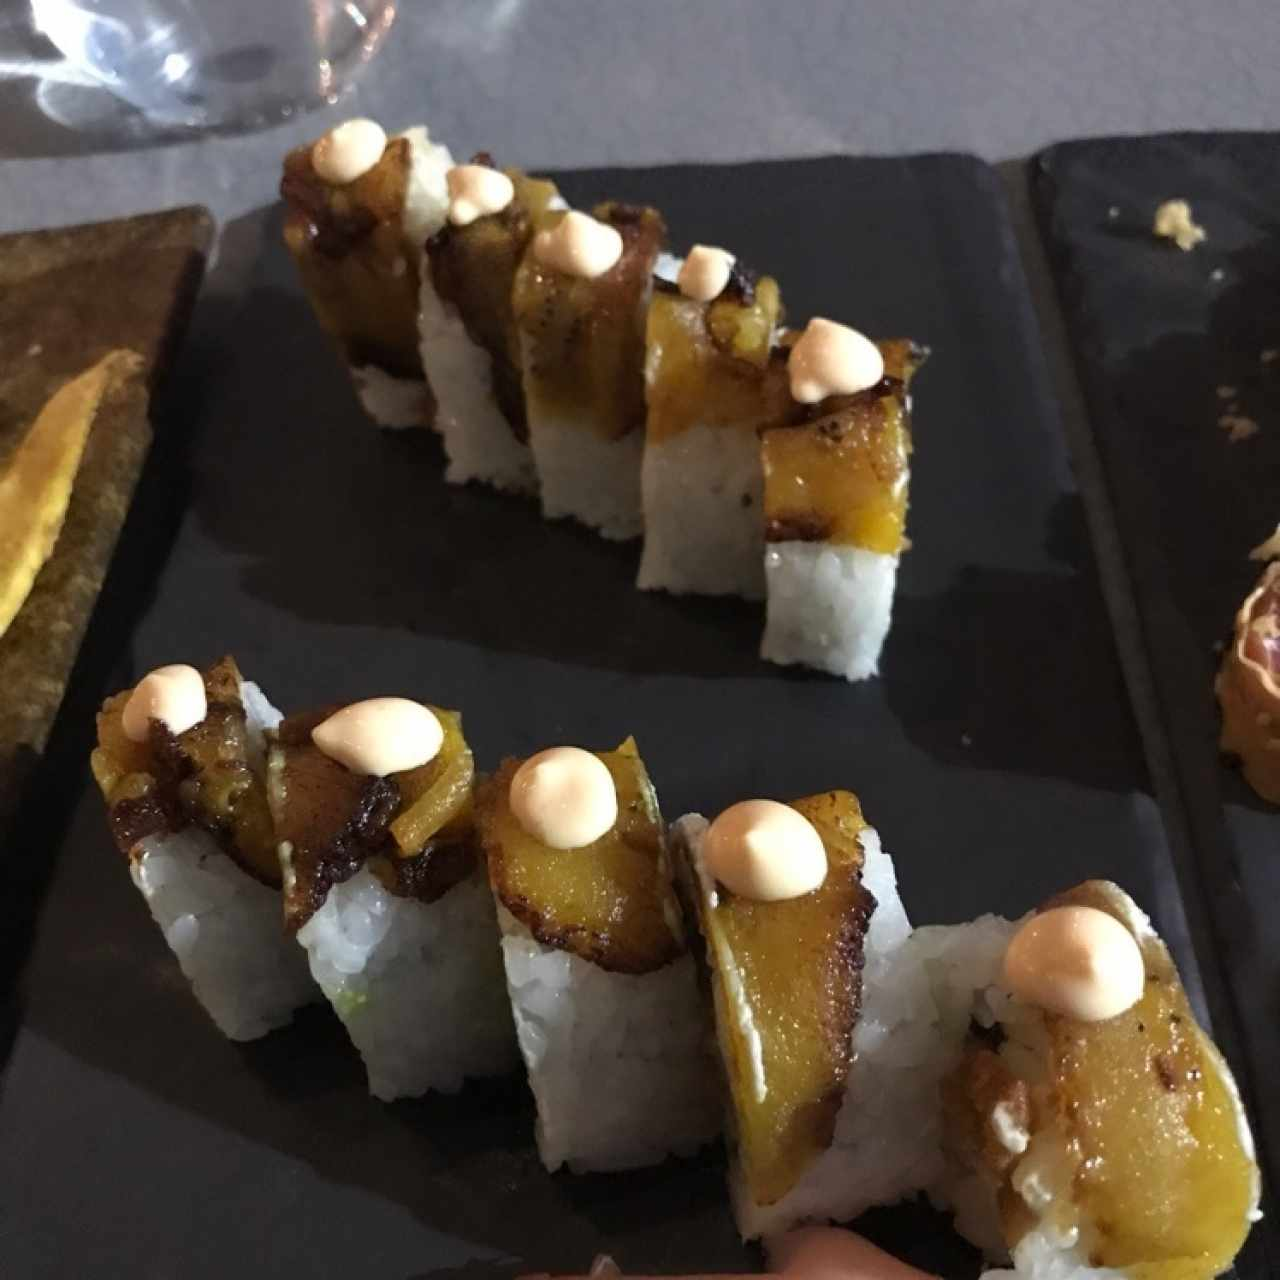 Sushi Bar - Dragón roll